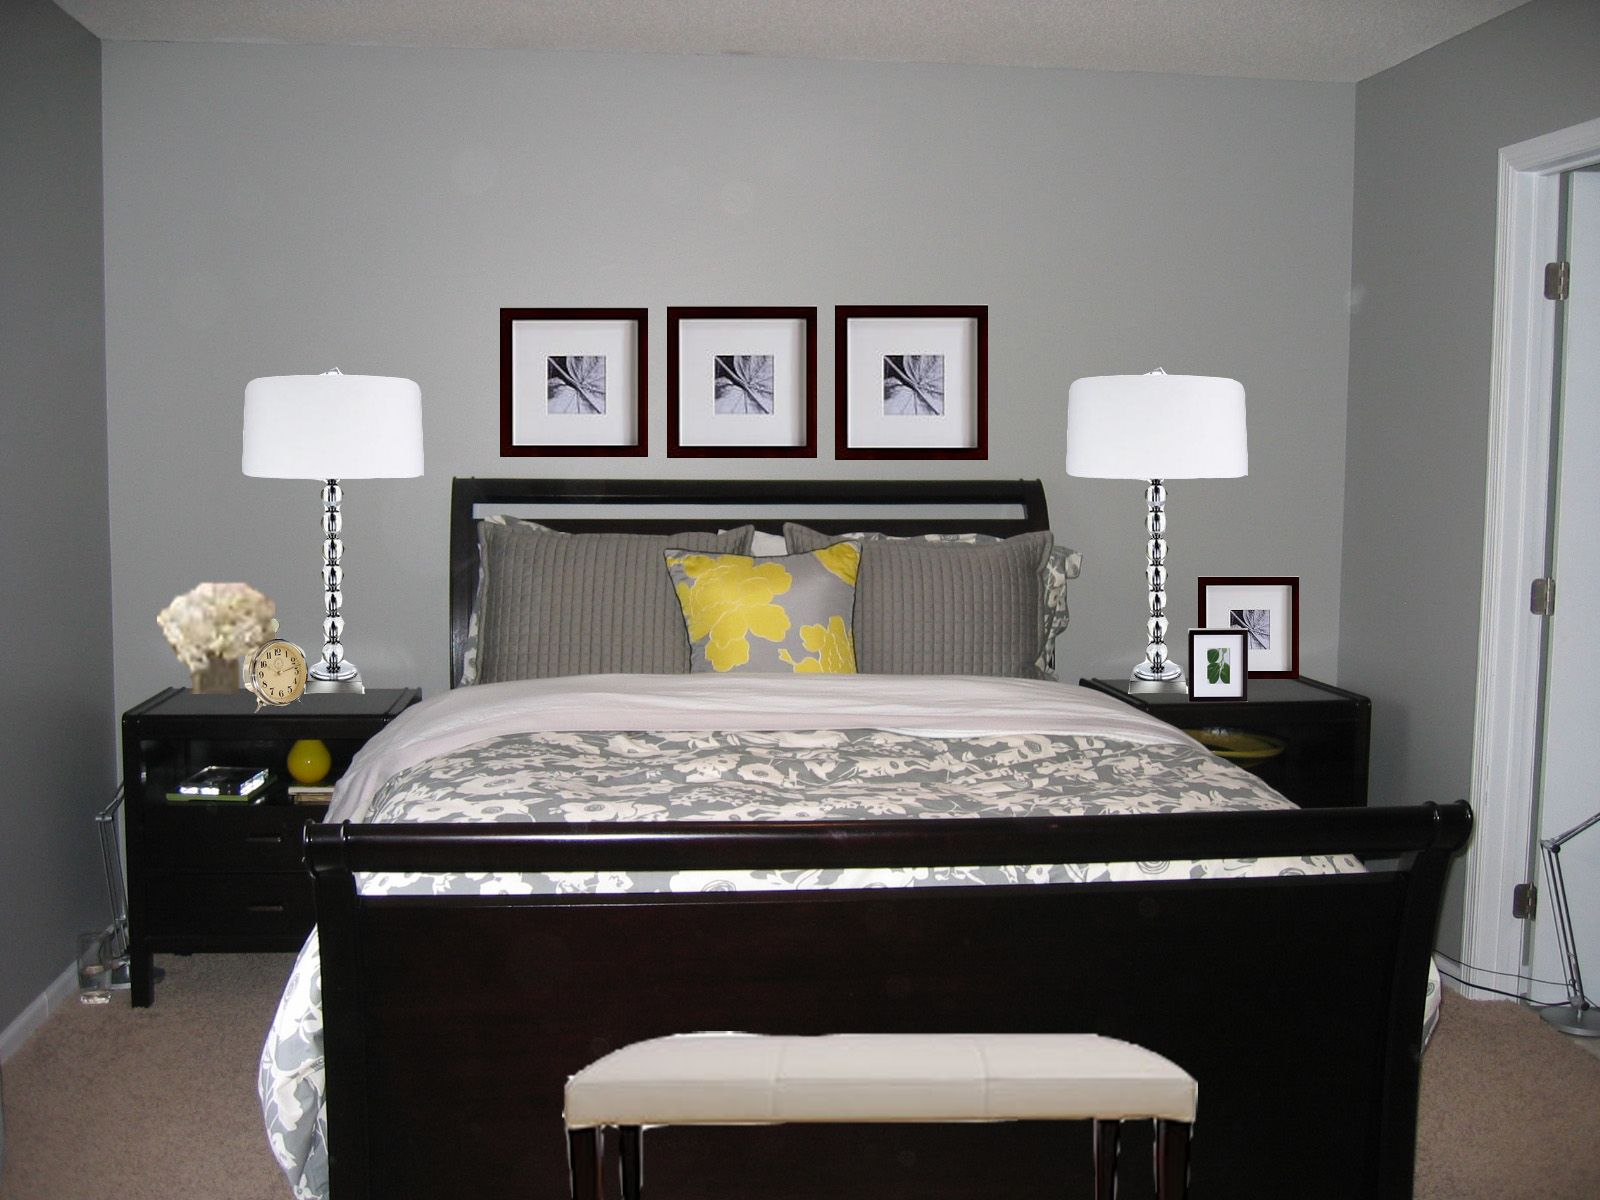 Couple bedroom wall decoration ideas - Lovely Master Bedroom Gray Color Ideas On Bedroom Decorating Ideas